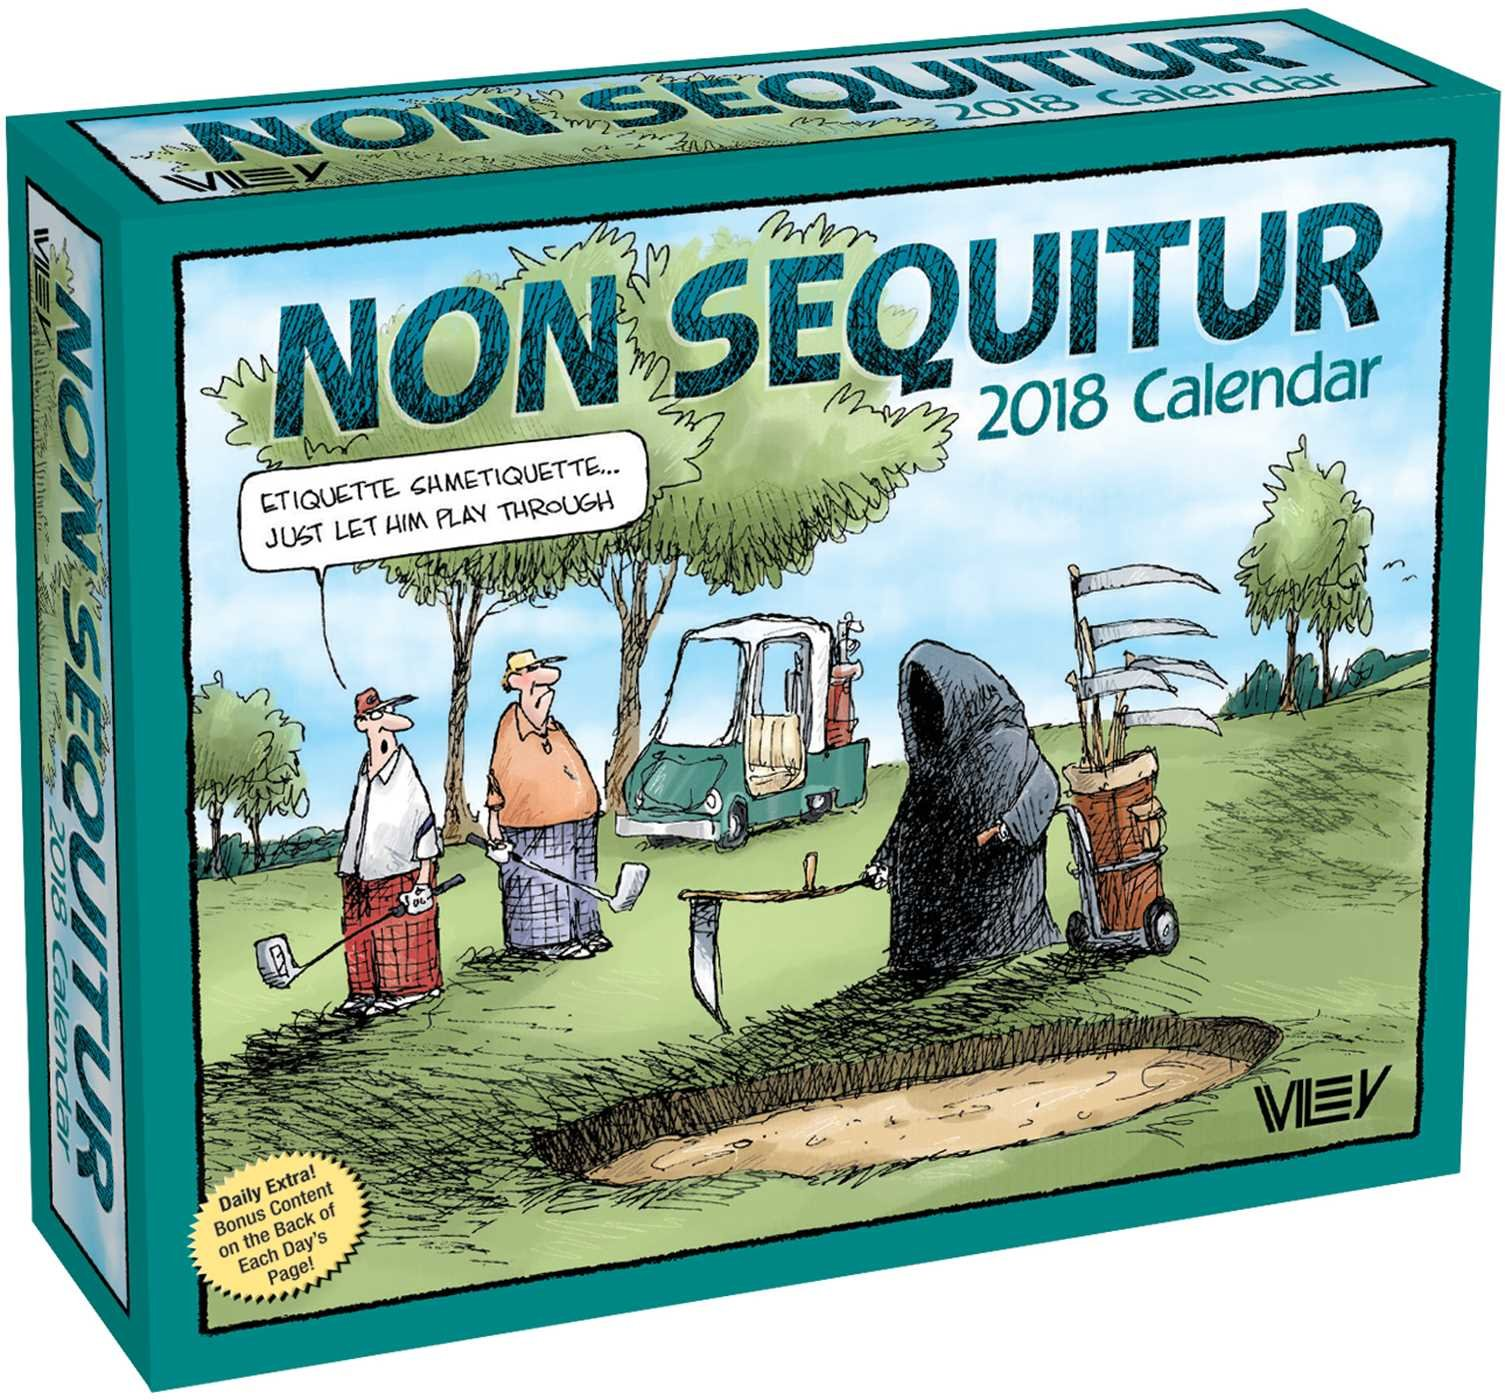 Non Sequitur 2018 Day-to-Day Calendar Calendar – Day to Day Calendar, Jul 25 2017 Wiley Miller Andrews McMeel Publishing 1449482597 Cartoons & Comic Strips